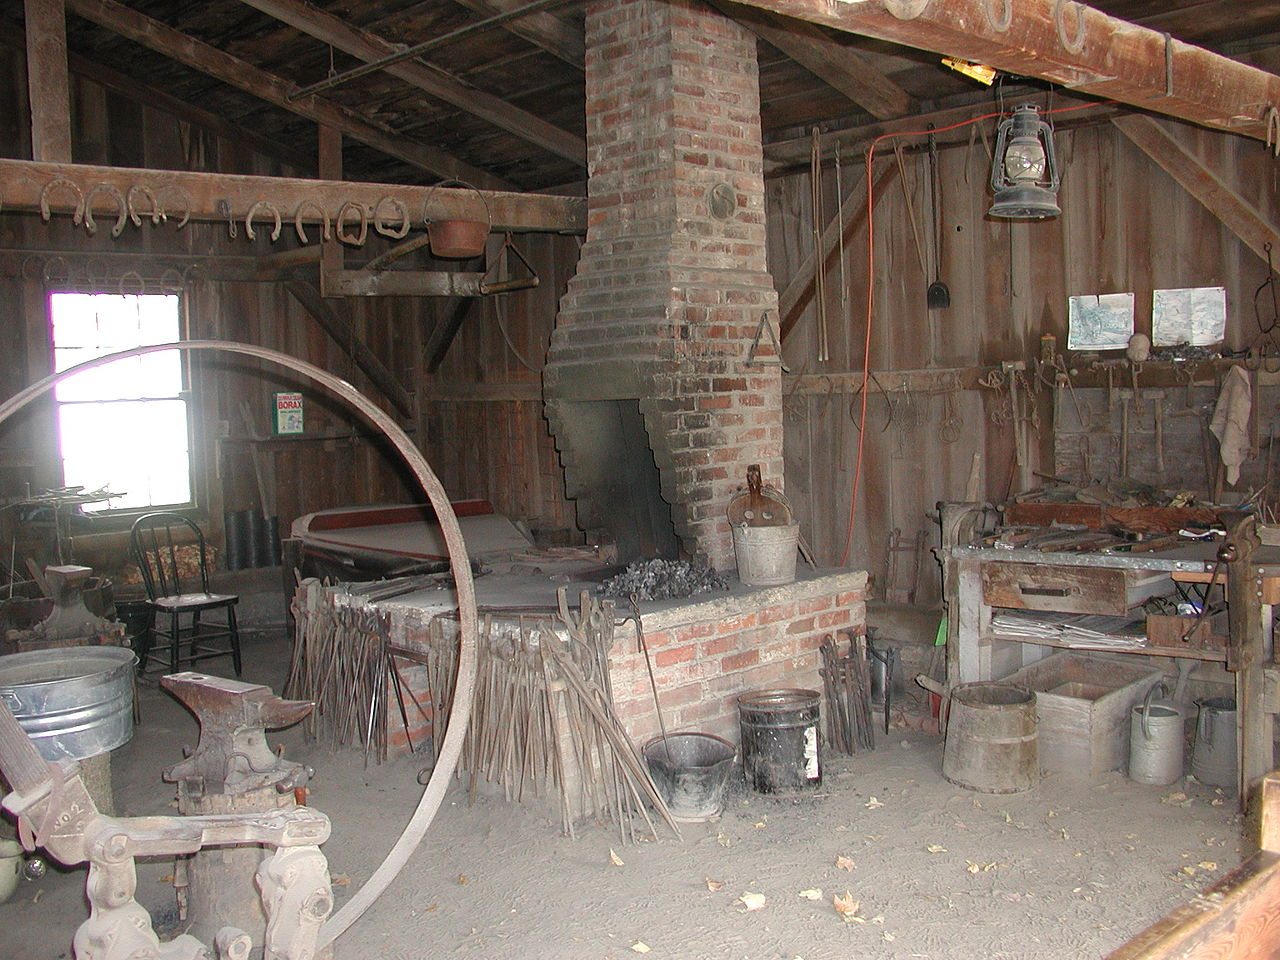 Blacksmith's Shop The Borders and the Southwest, Brick Forge   Blacksmith Shop   Pinterest   Blacksmithing